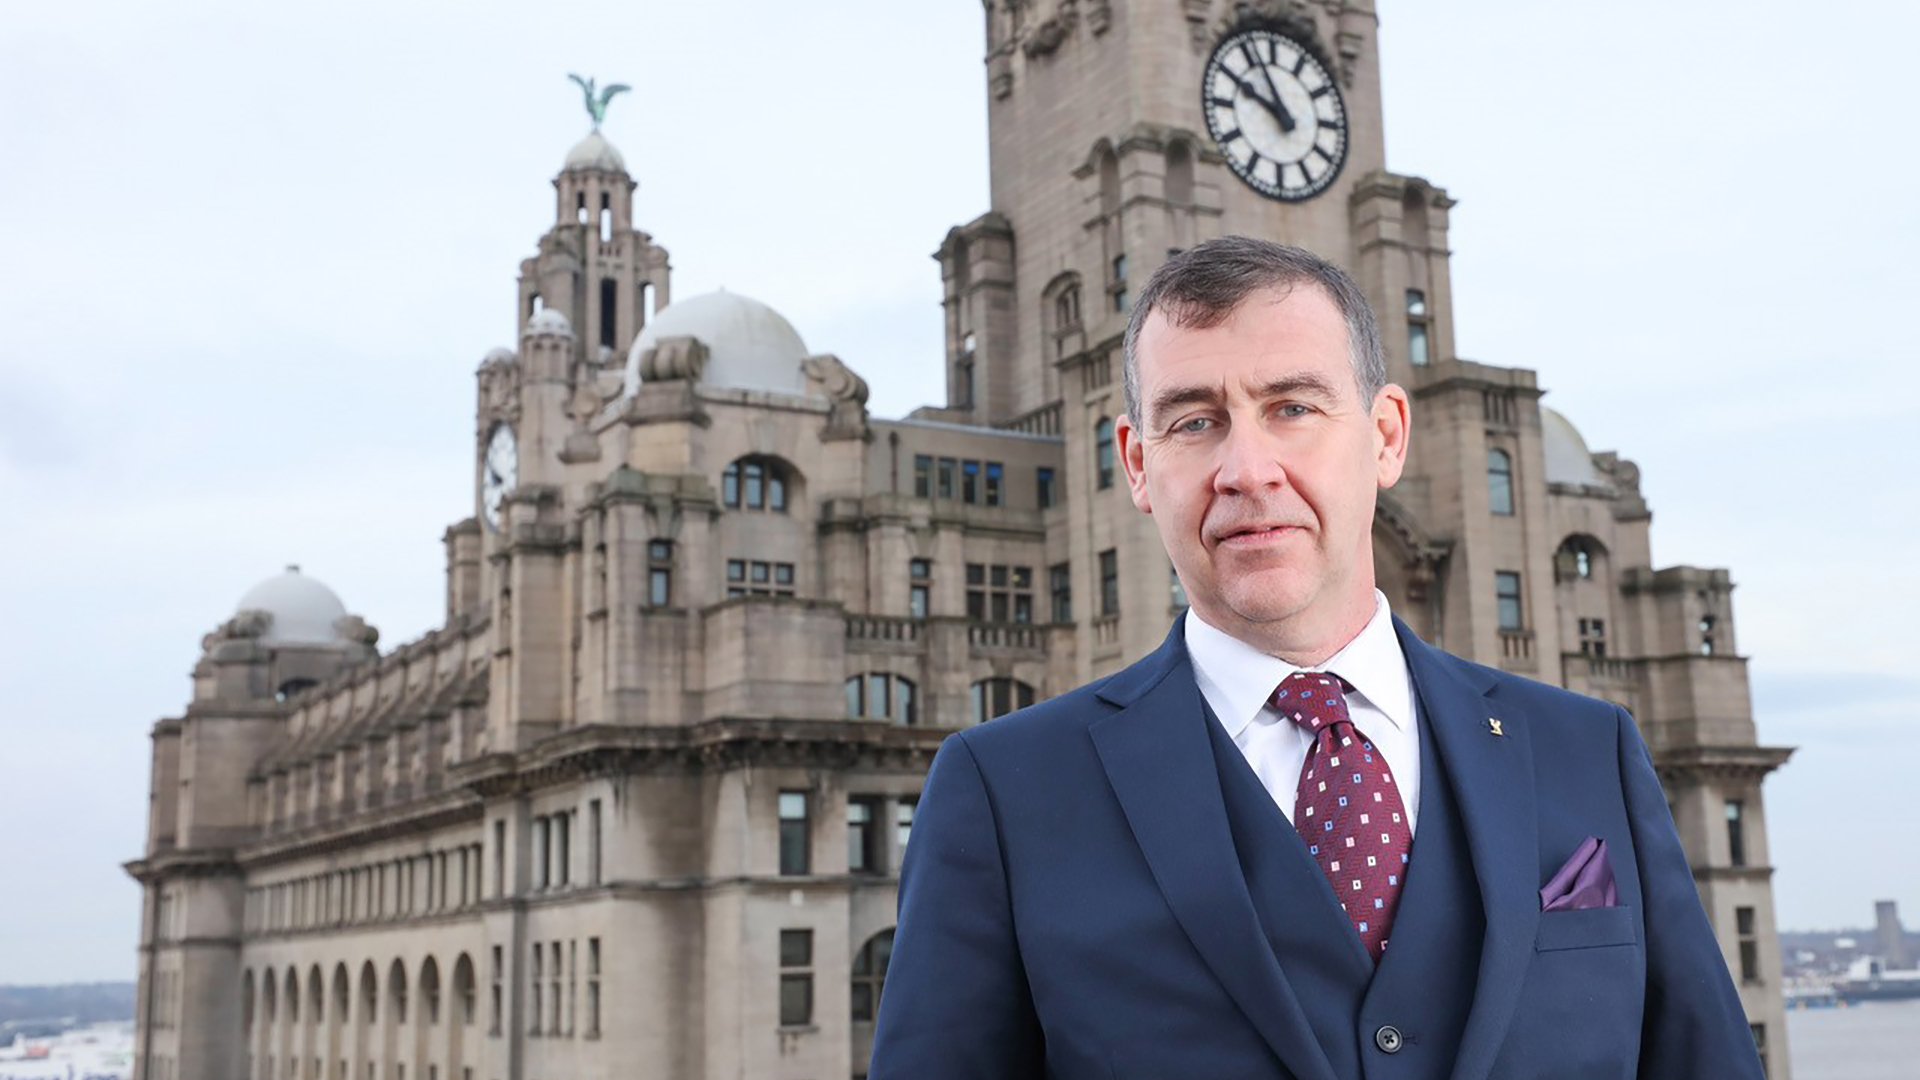 Sutcliffe managing director Sean Keyes appointed as new ACE North West chair